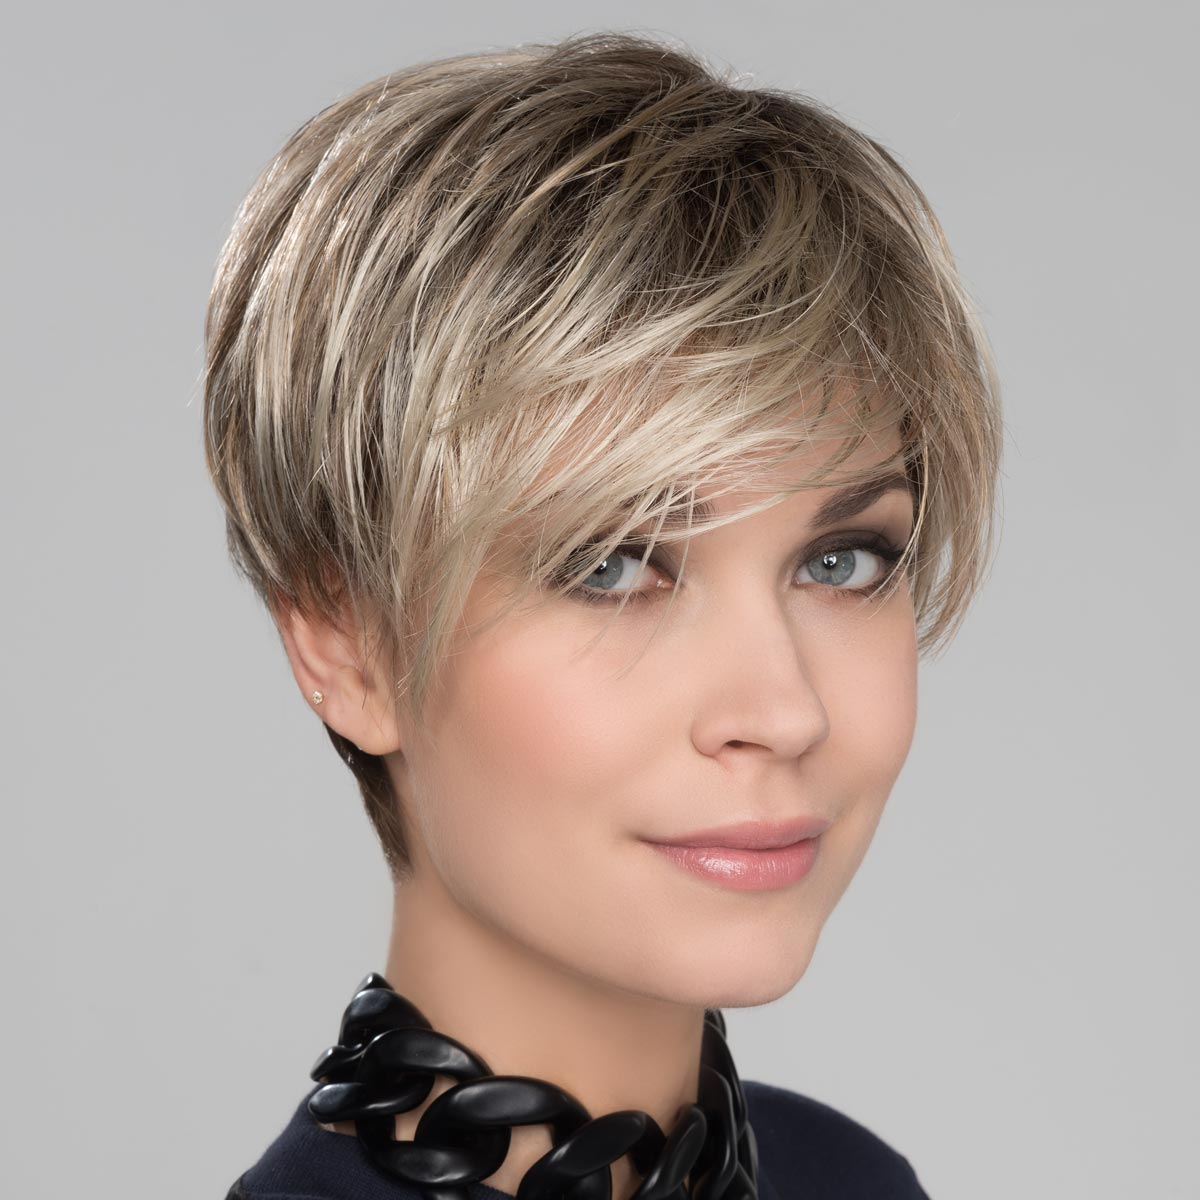 Women's Short Hair Wigs